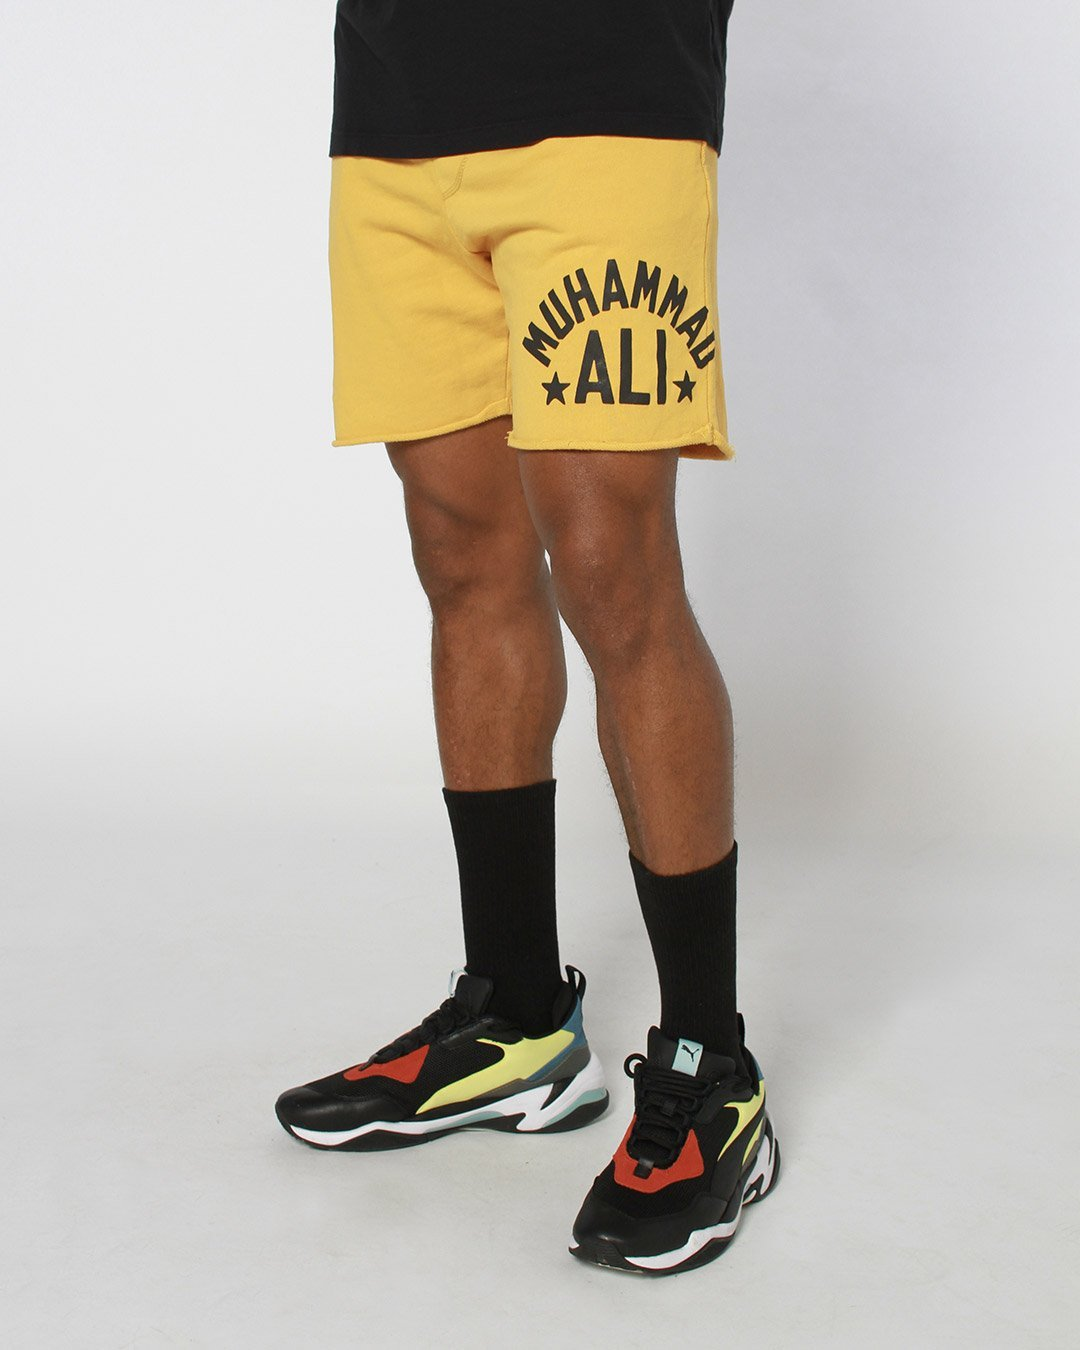 Ali Tribute Shorts - Roots of Inc dba Roots of Fight